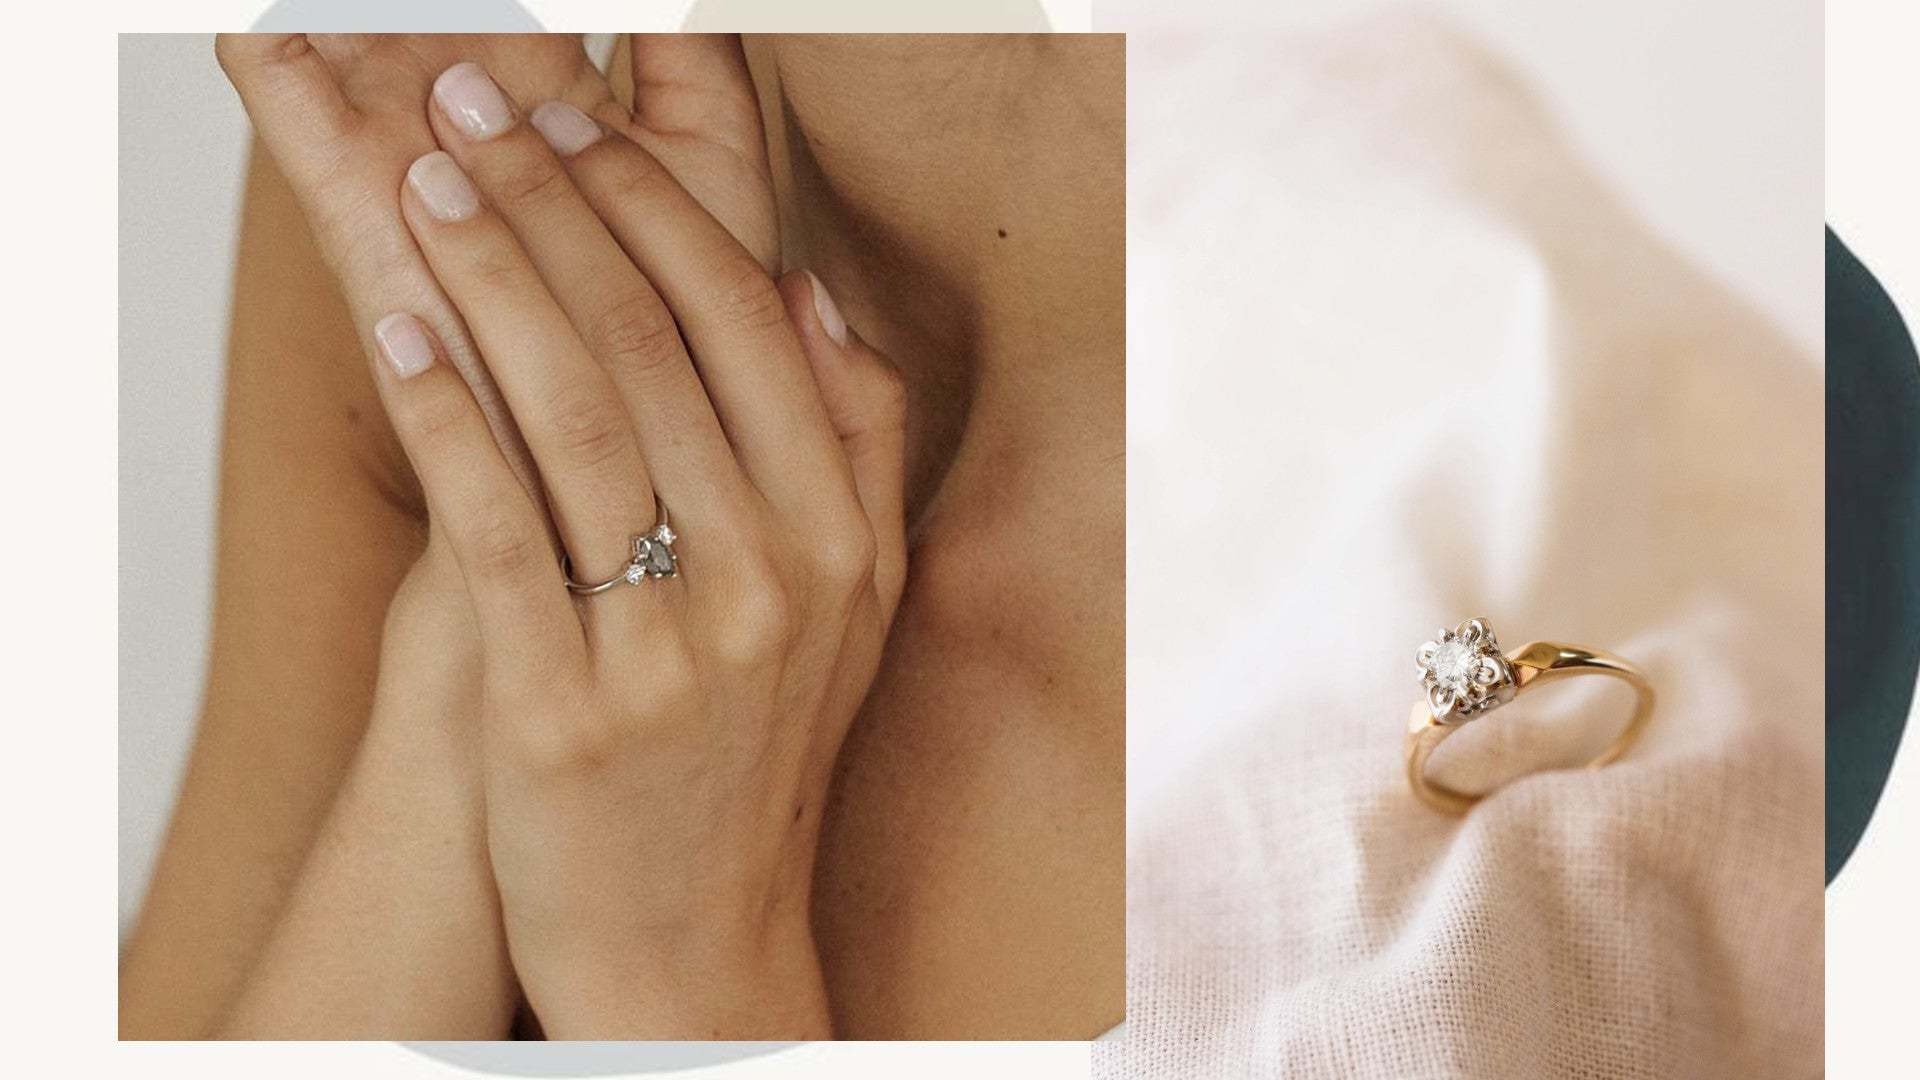 Vancouver handmade ethical diamond engagement rings